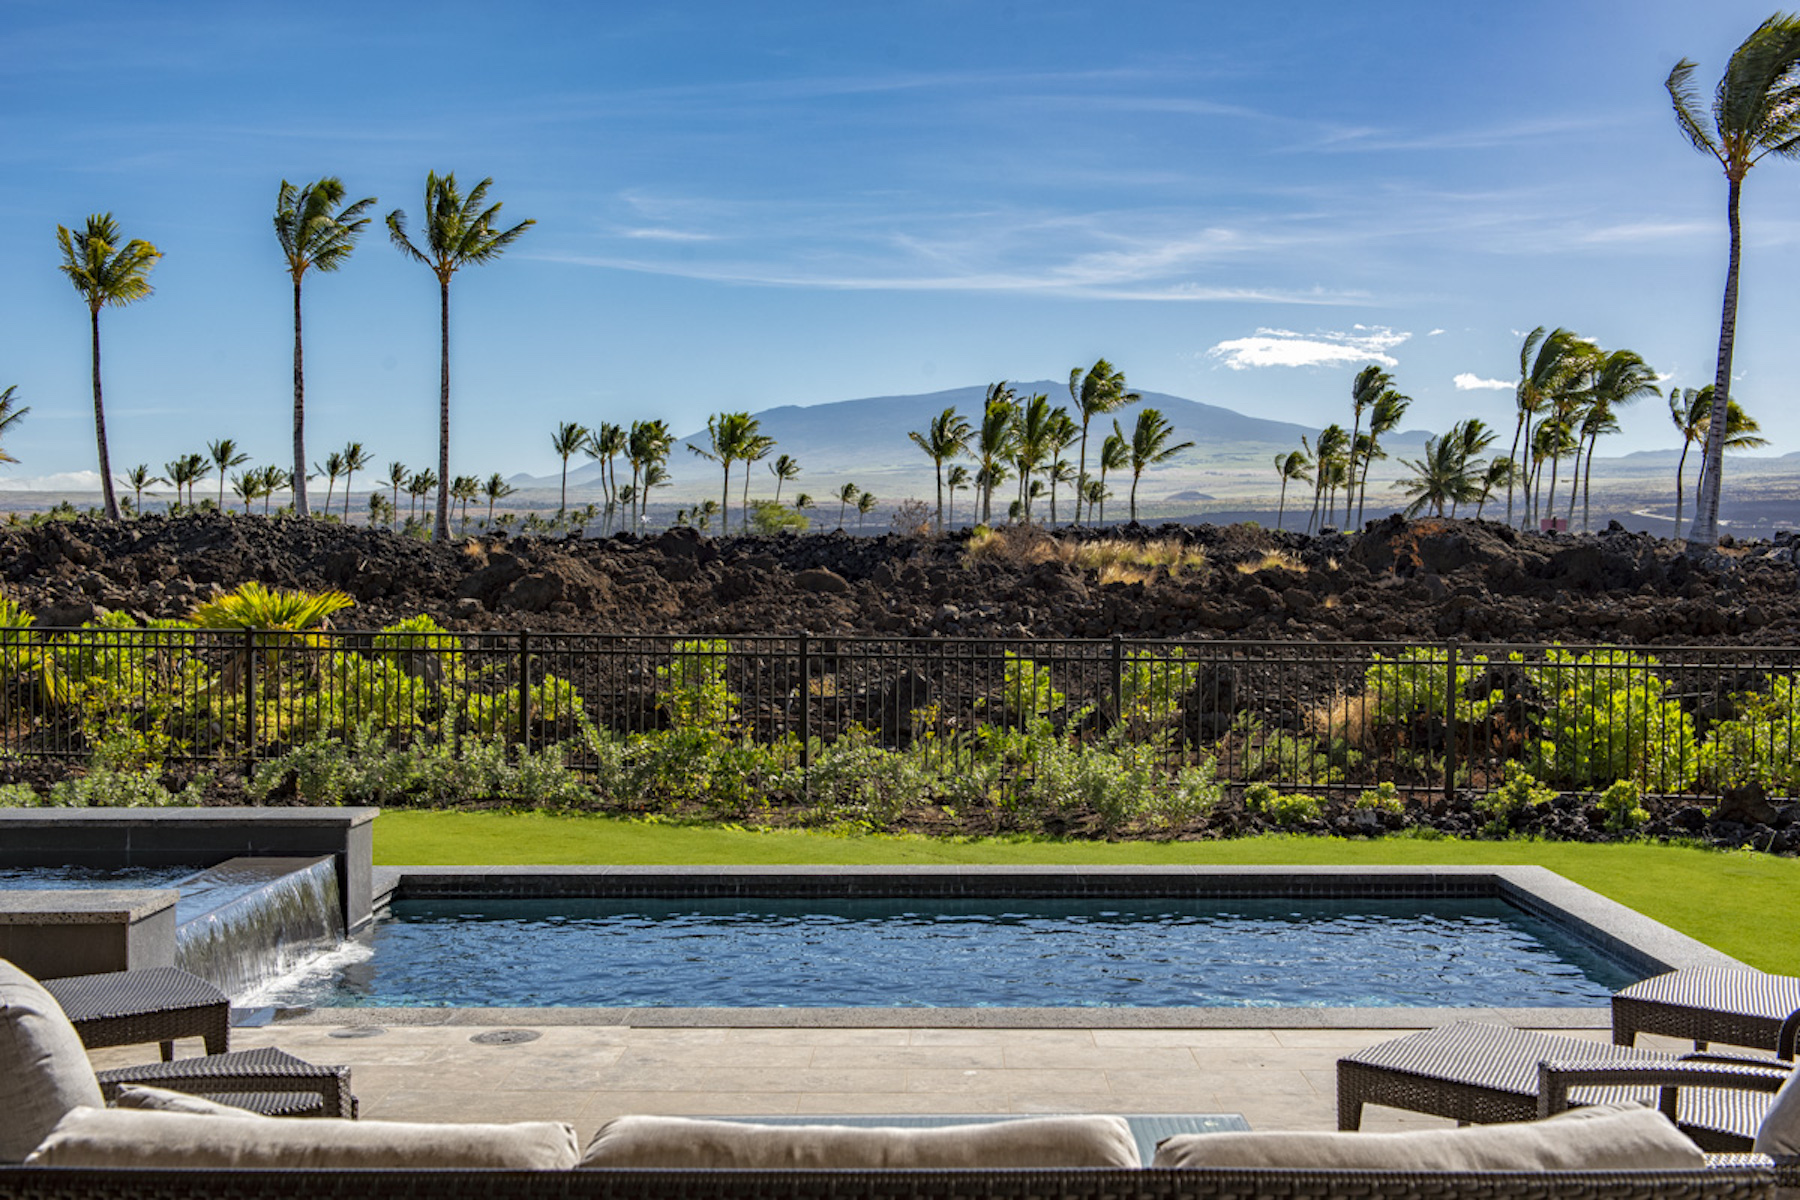 Single Family Home for Active at Residences at Laule'a 68-1210 S. Kaniku Alanui #15C1 Kamuela, Hawaii 96743 United States